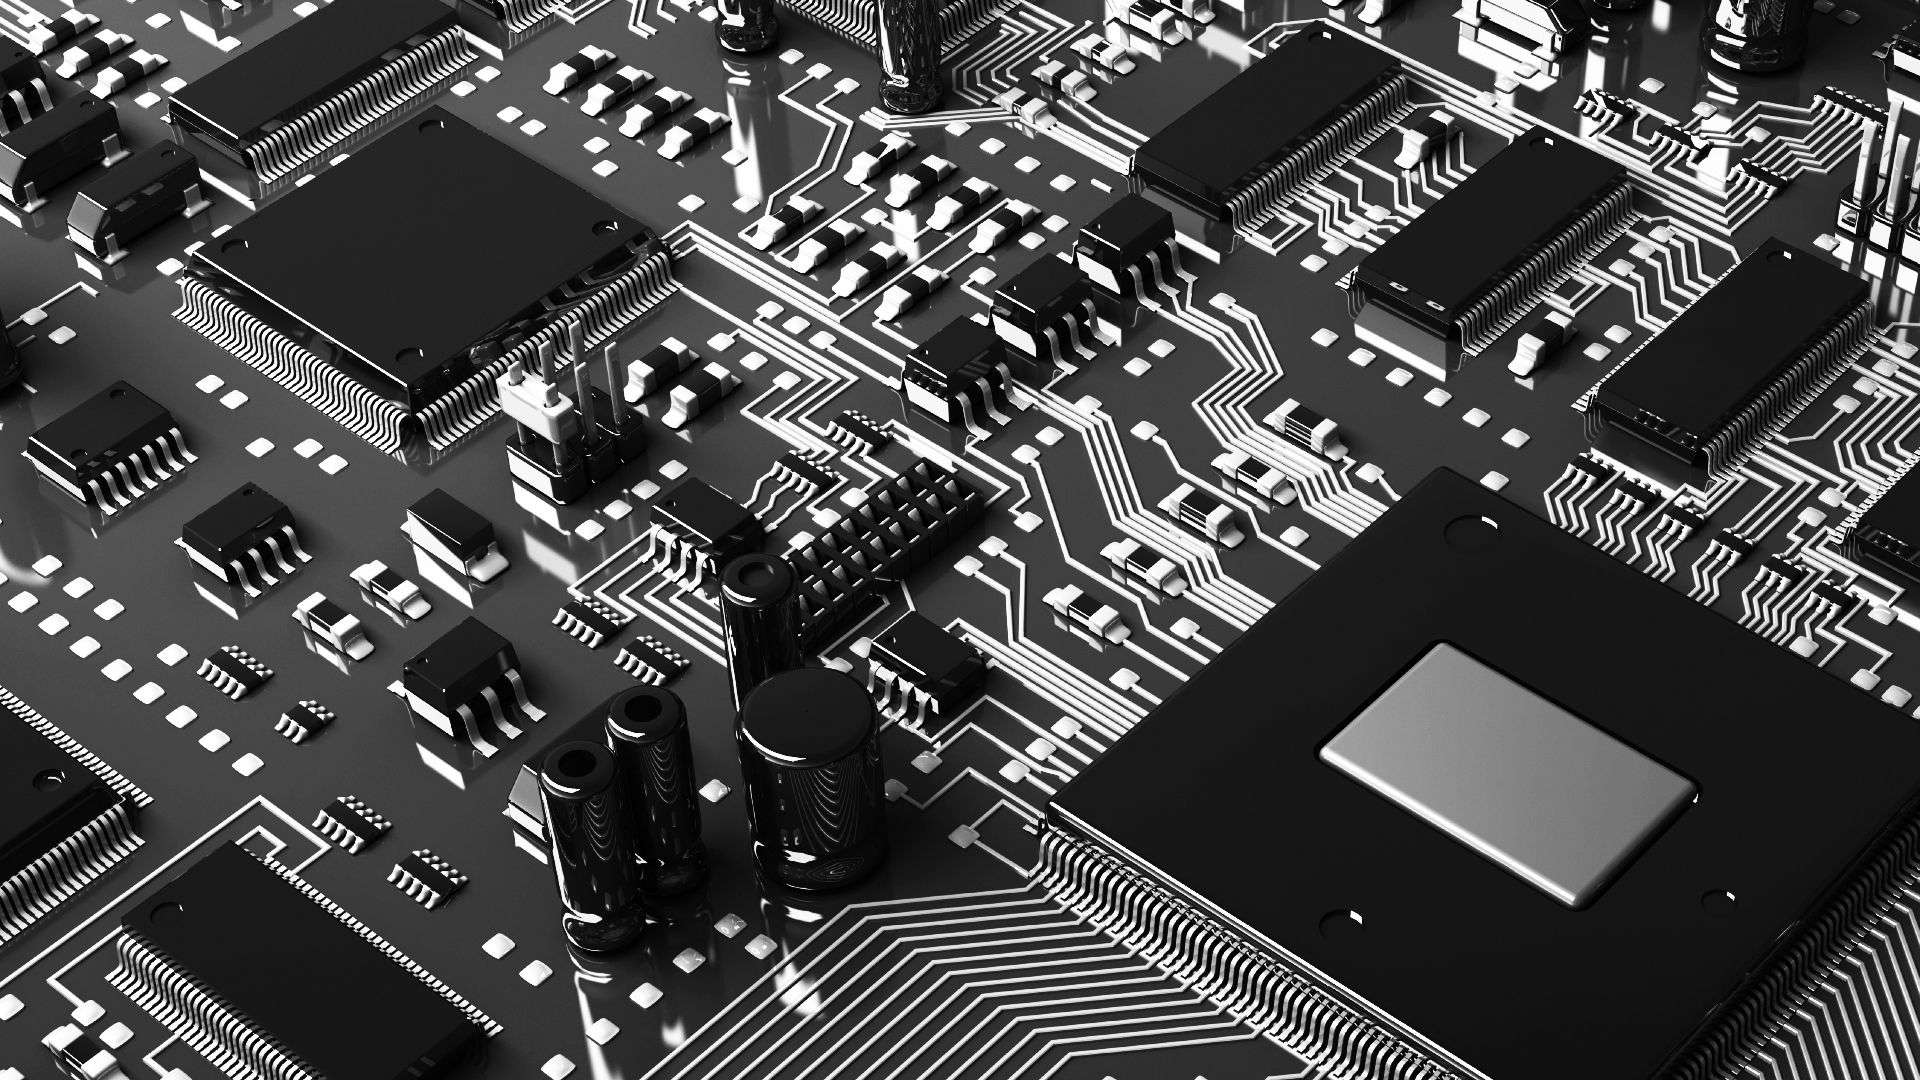 Circuitboard HD Wallpapers » FullHDWpp